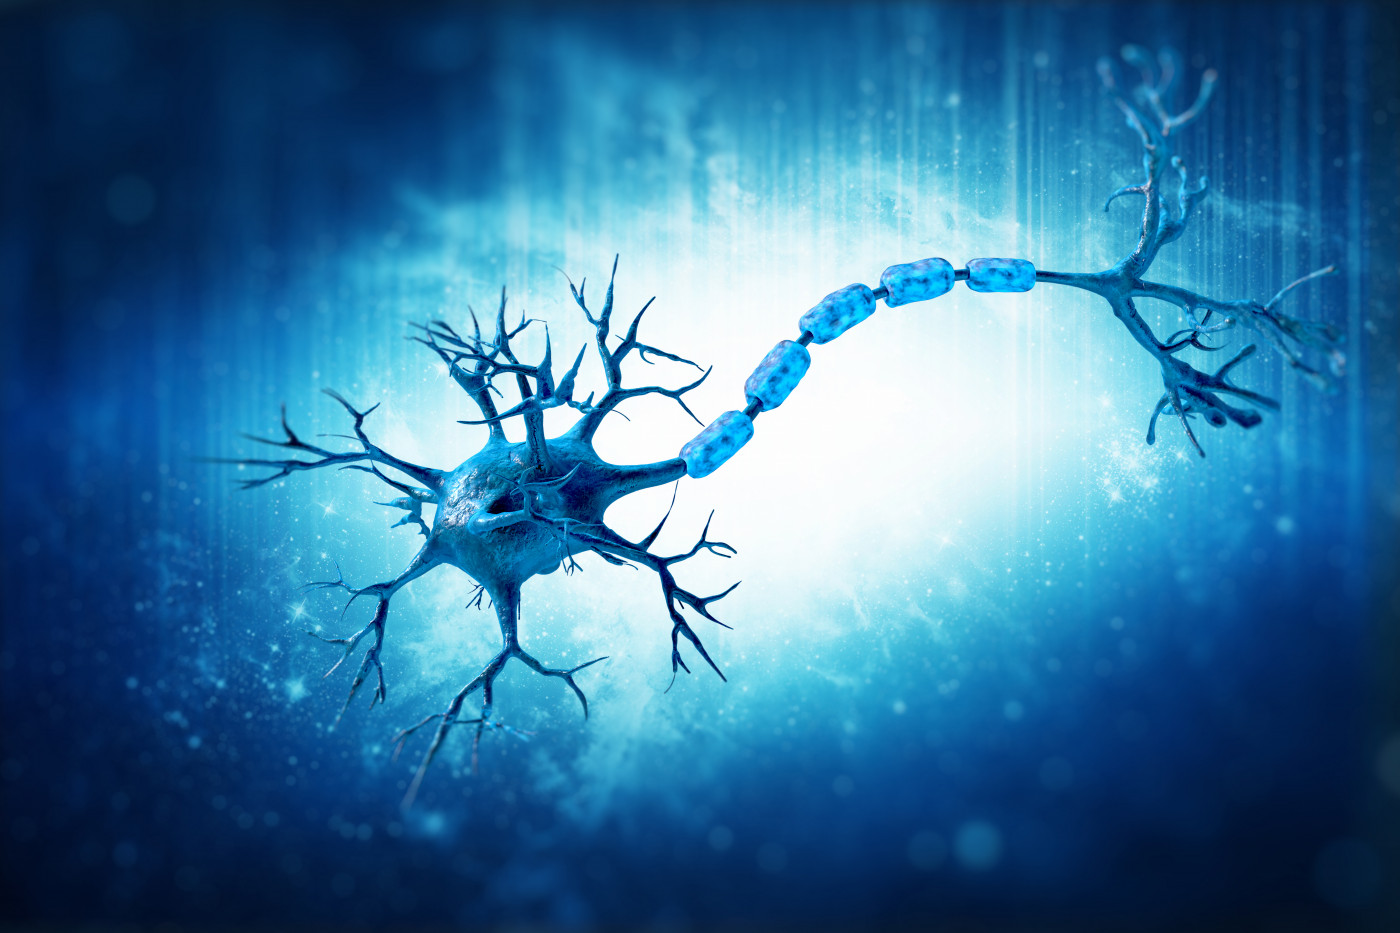 SARM1 and nerve cells